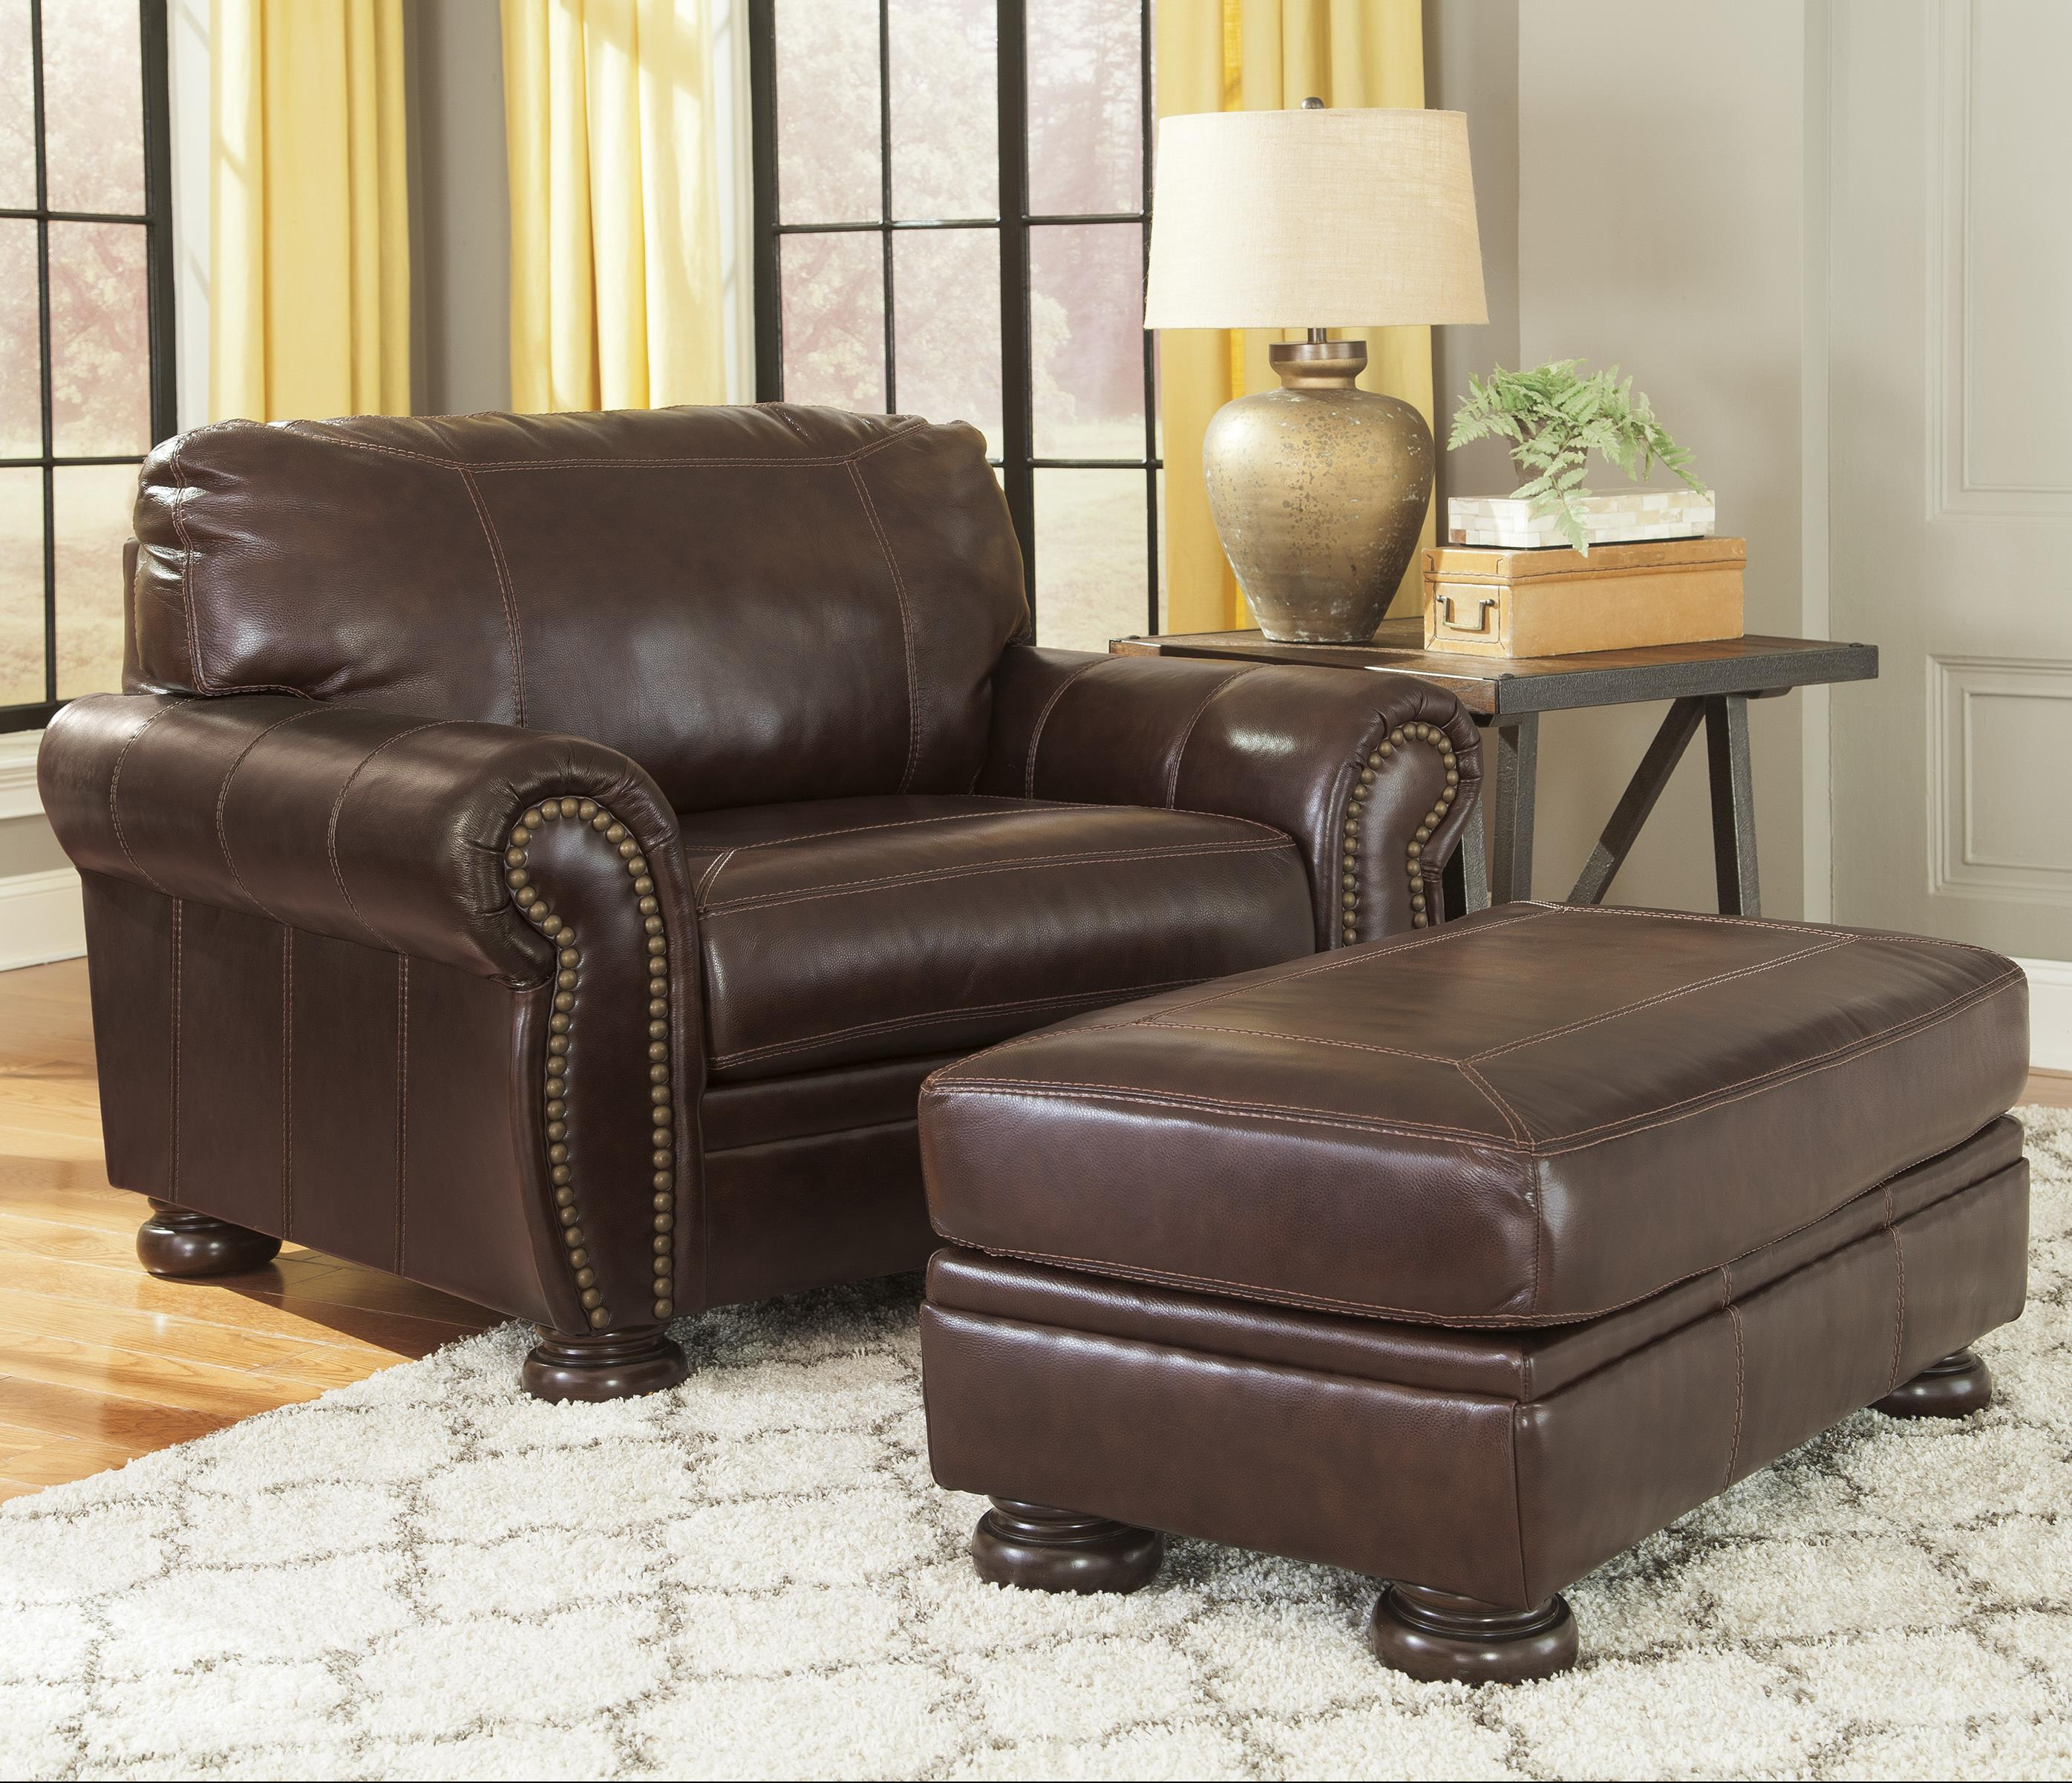 Ashley Furniture Signature Design Banner 5040423 14 Traditional Leather Match Chair And A Half Ottoman Del Sol Furniture Chair Ottoman Sets